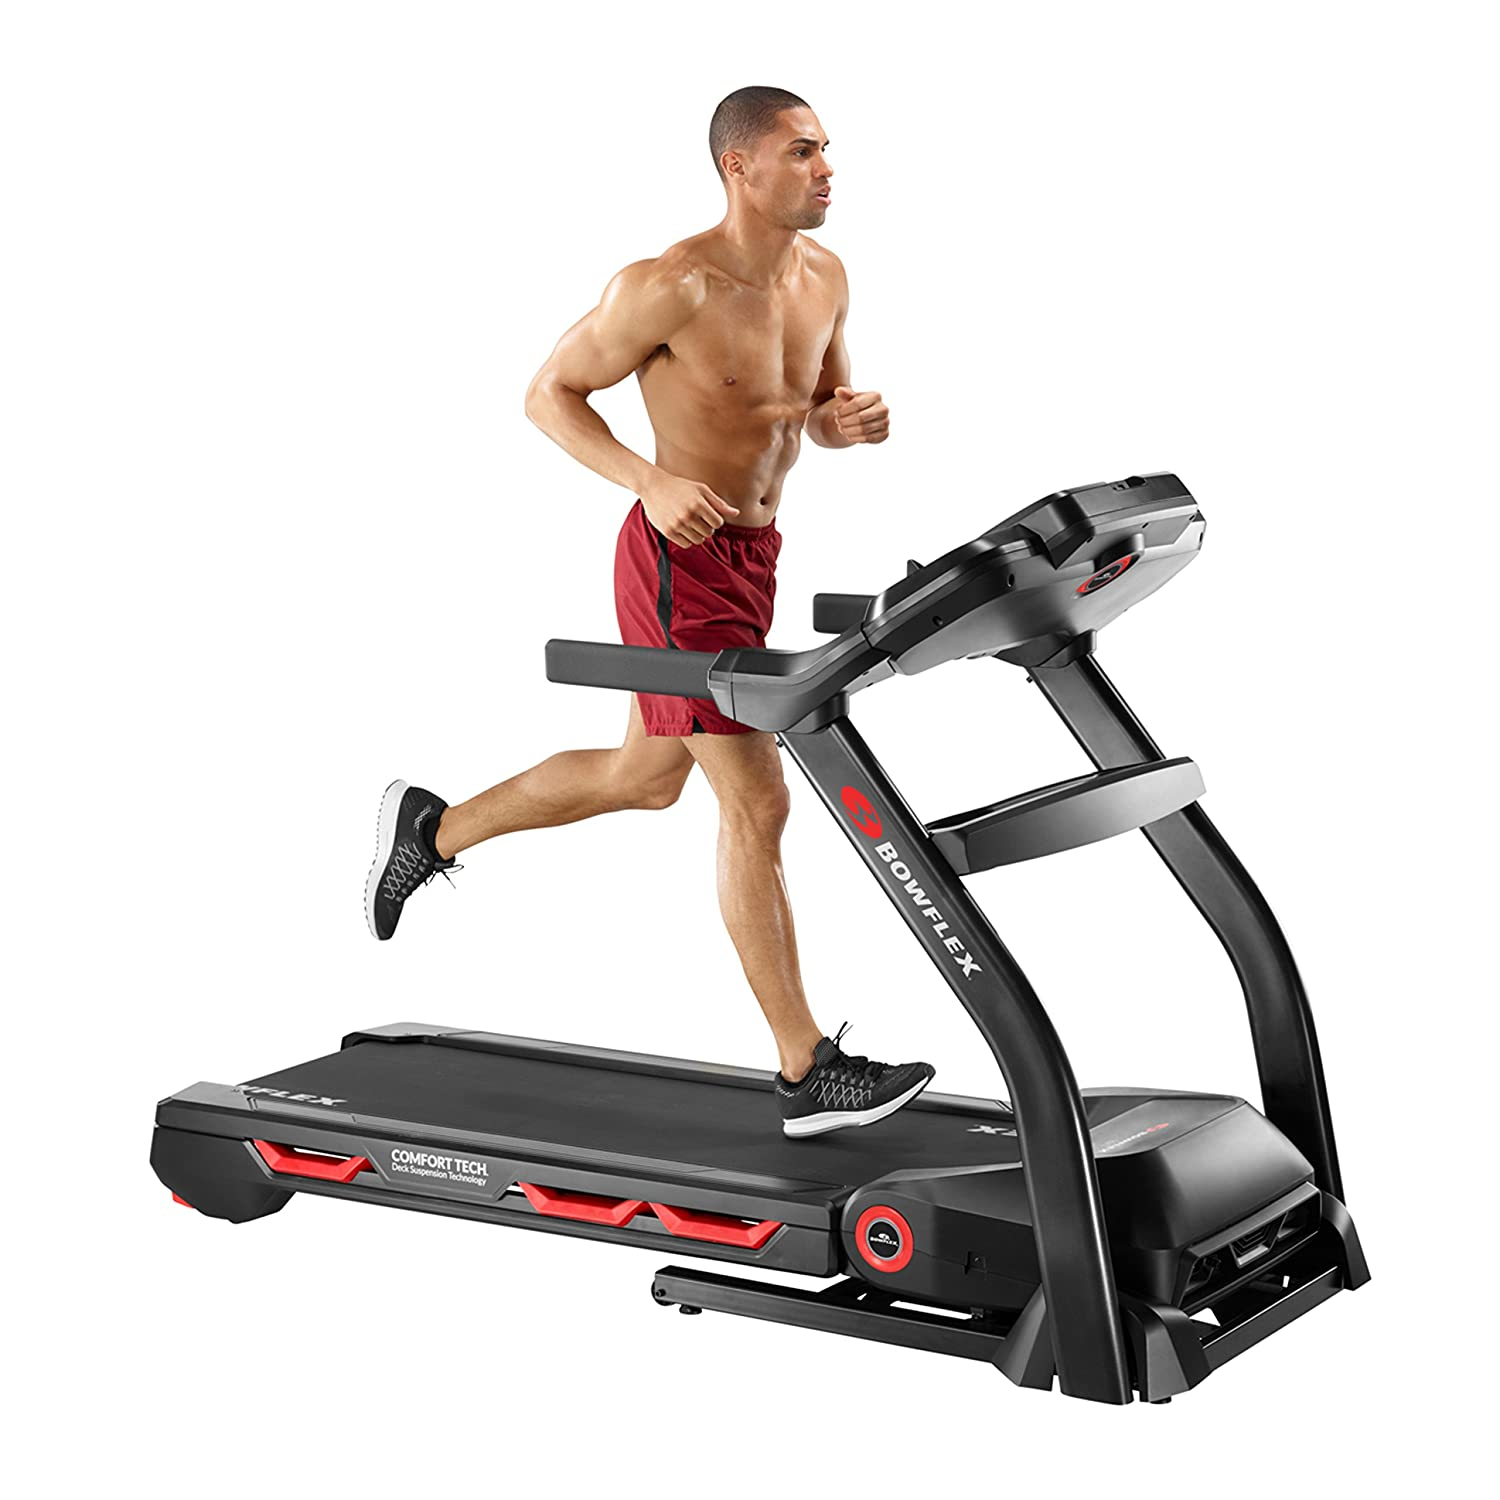 Bowflex Results Series Treadmills Black Friday Deals